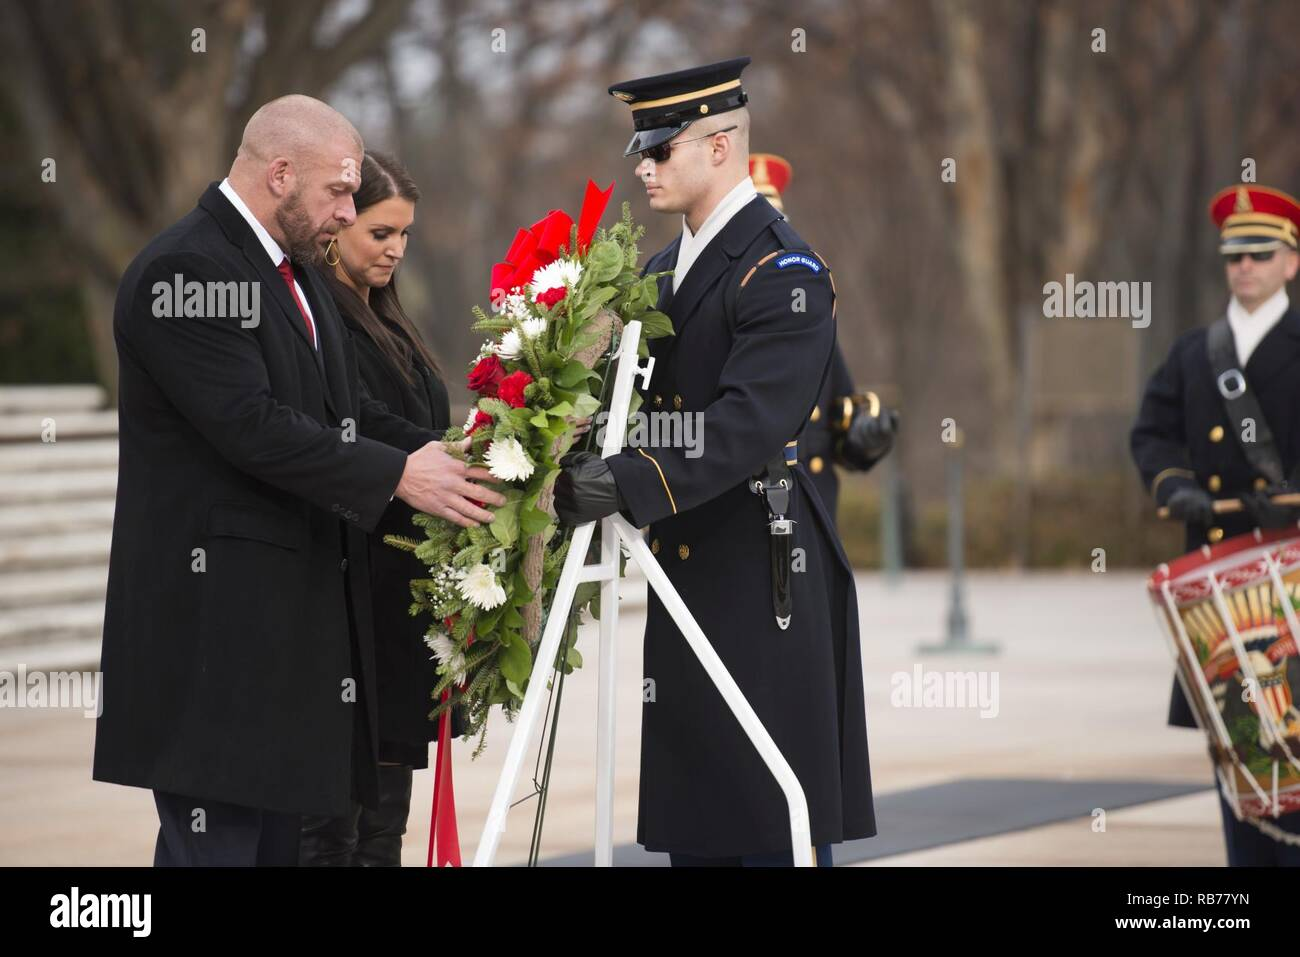 """From the left, WWE Paul """"Triple H"""" Levesque and WWE Chief Brand Officer Stephanie McMahon place a wreath at the Tomb of the Unknown Soldier in Arlington National Cemetery, Dec. 13, 2016, in Arlington, Va. WWE is scheduled to host its 14th annual Tribute to the Troops, in partnership with the USO Metro, in Washington, D.C. - Stock Image"""